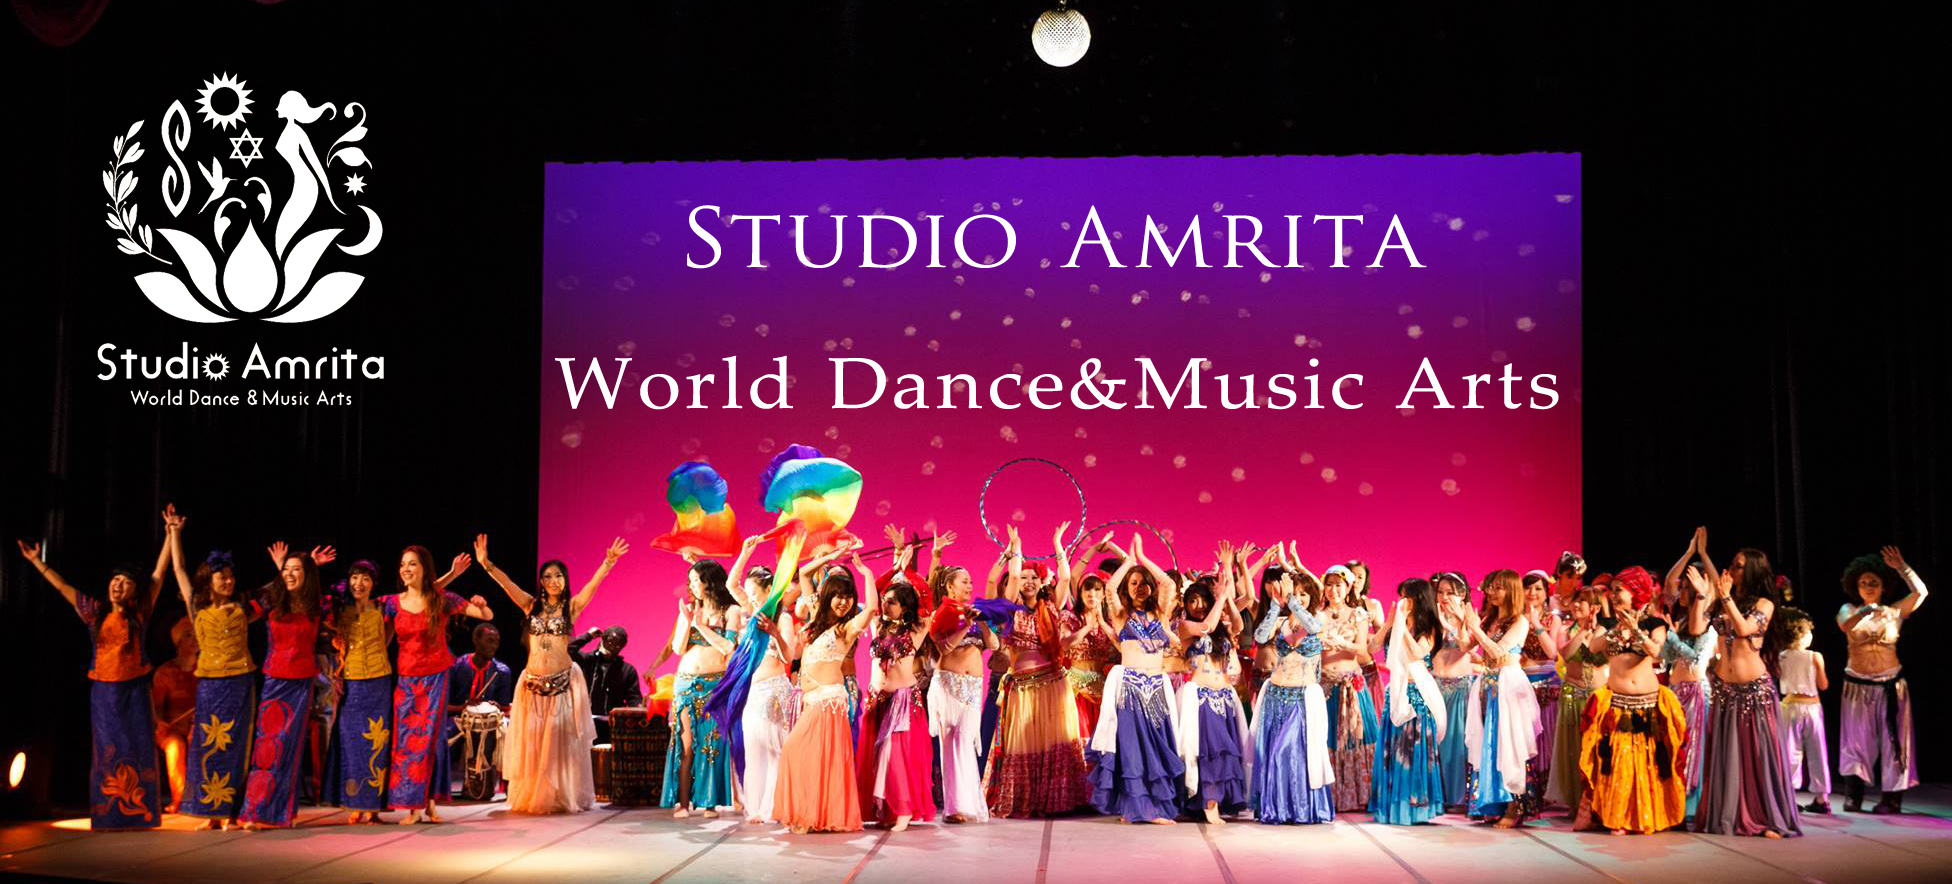 Amrita World Dance&Music Arts/Yoga Studio